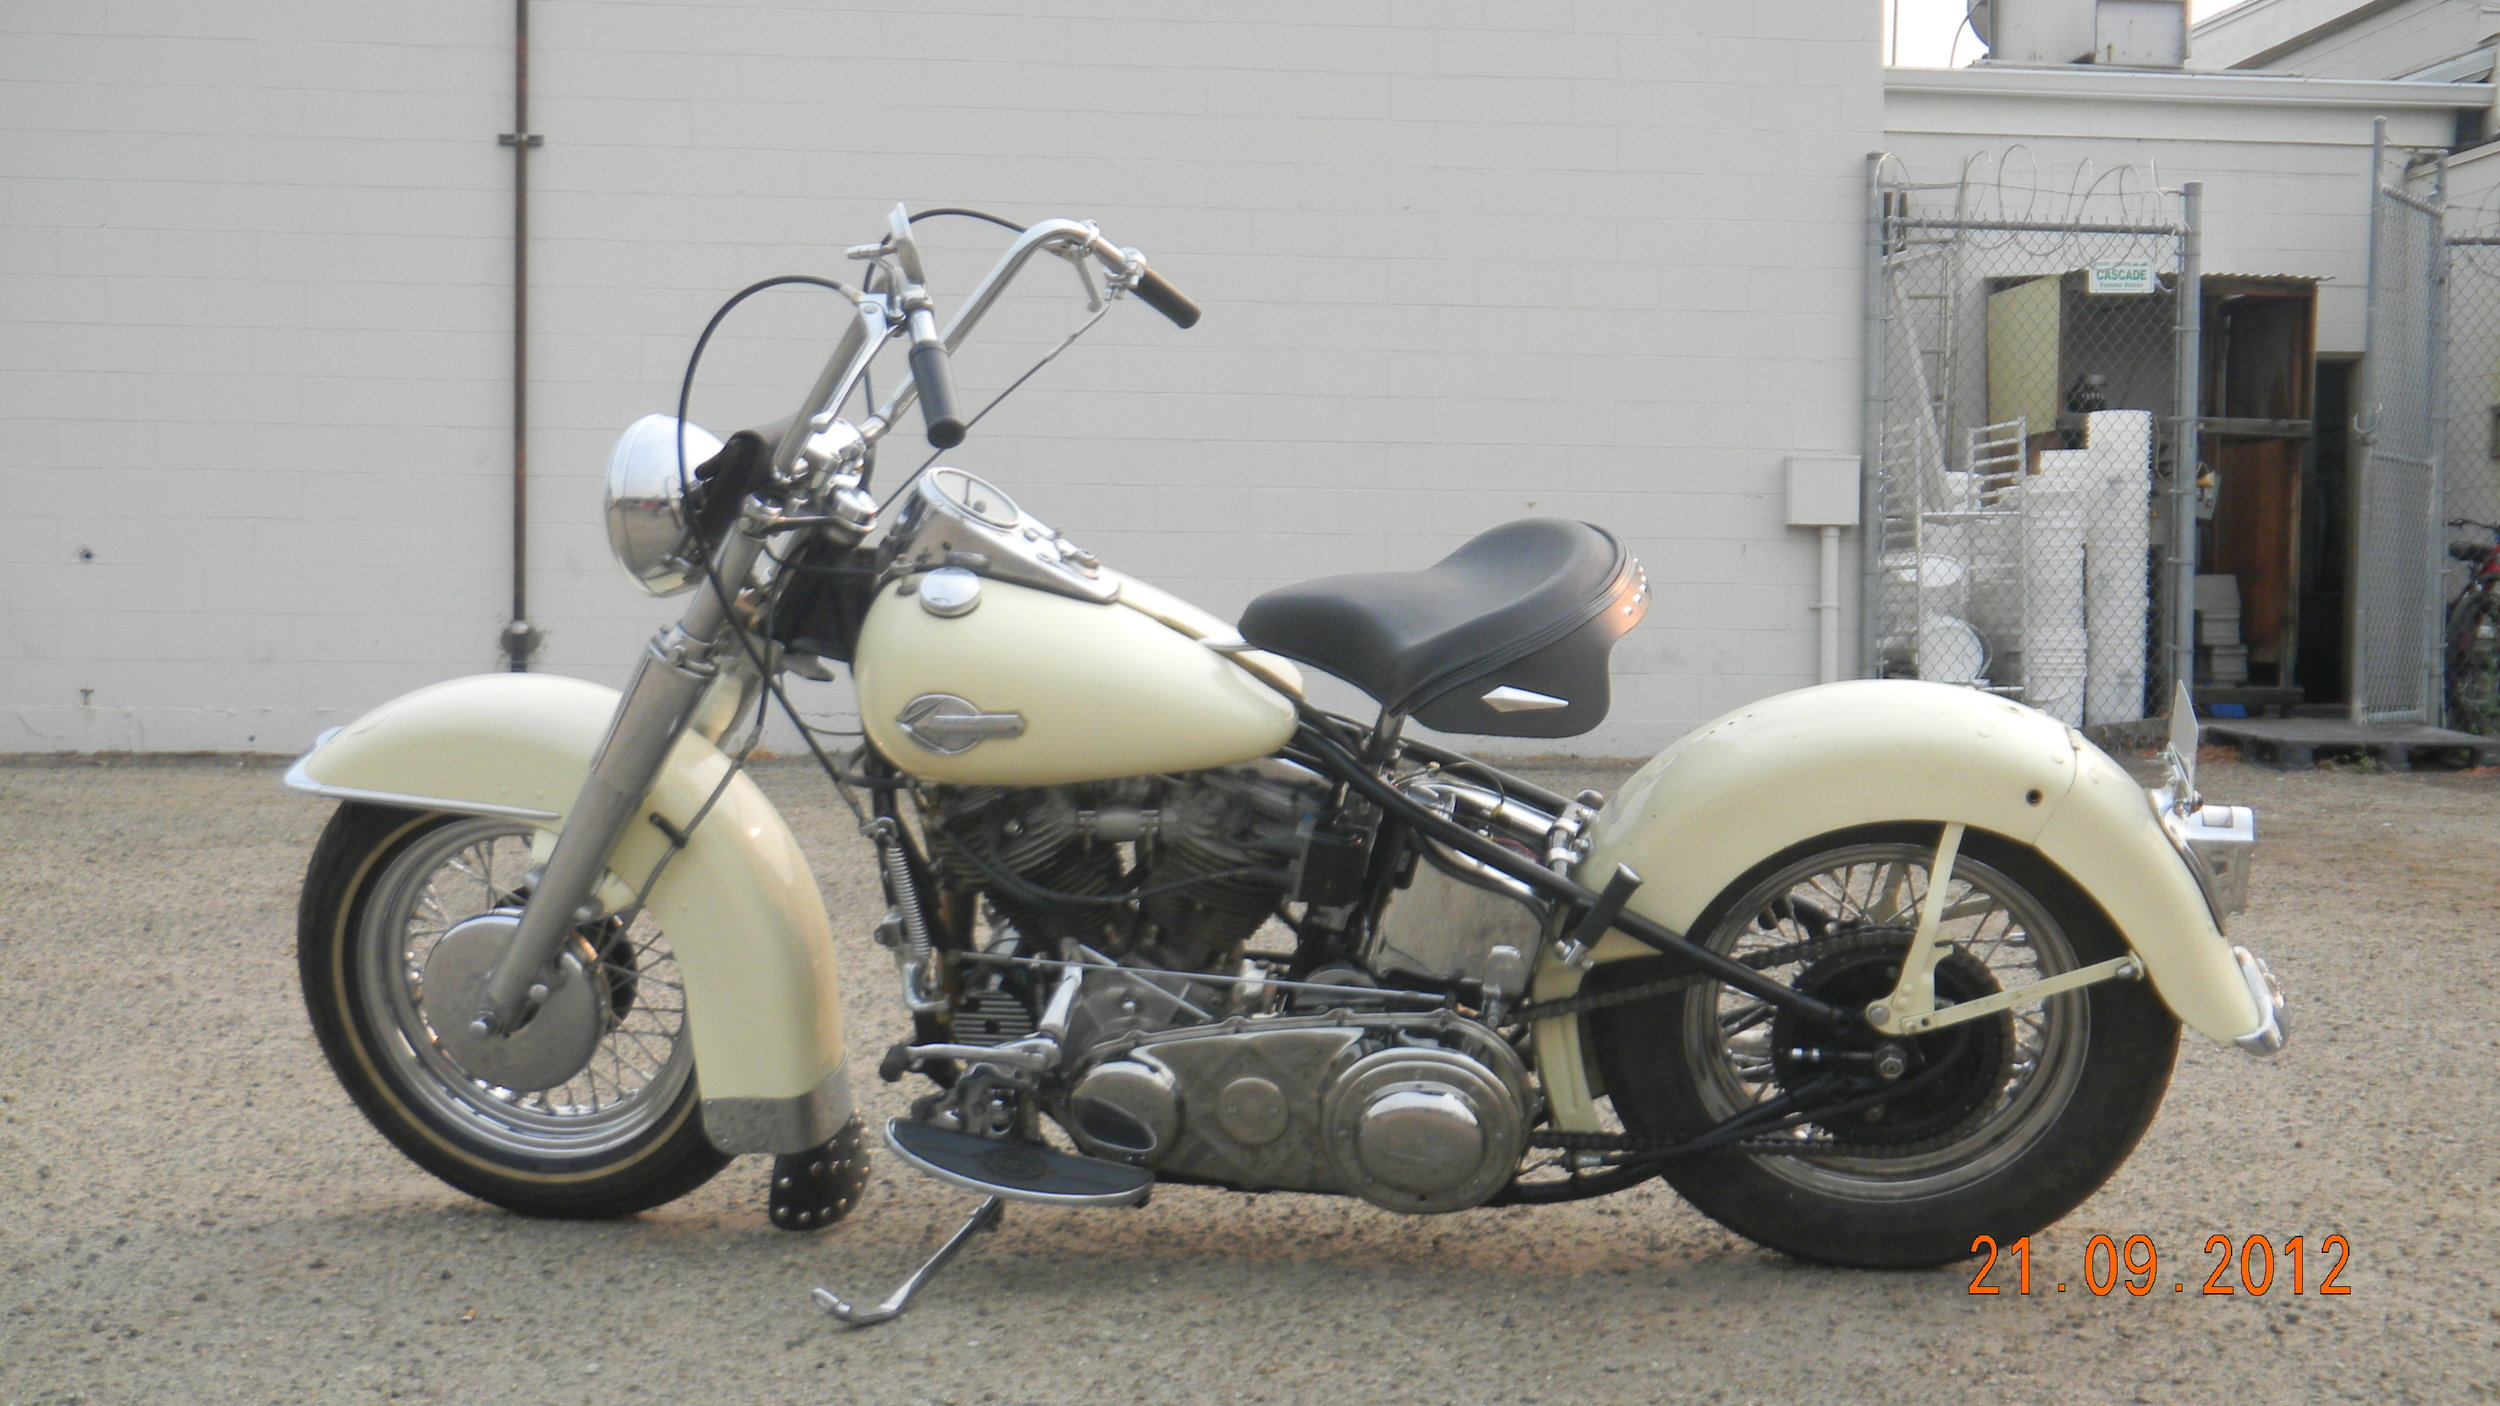 1951 HARLEY PANHEAD - AFTER RESTORATION